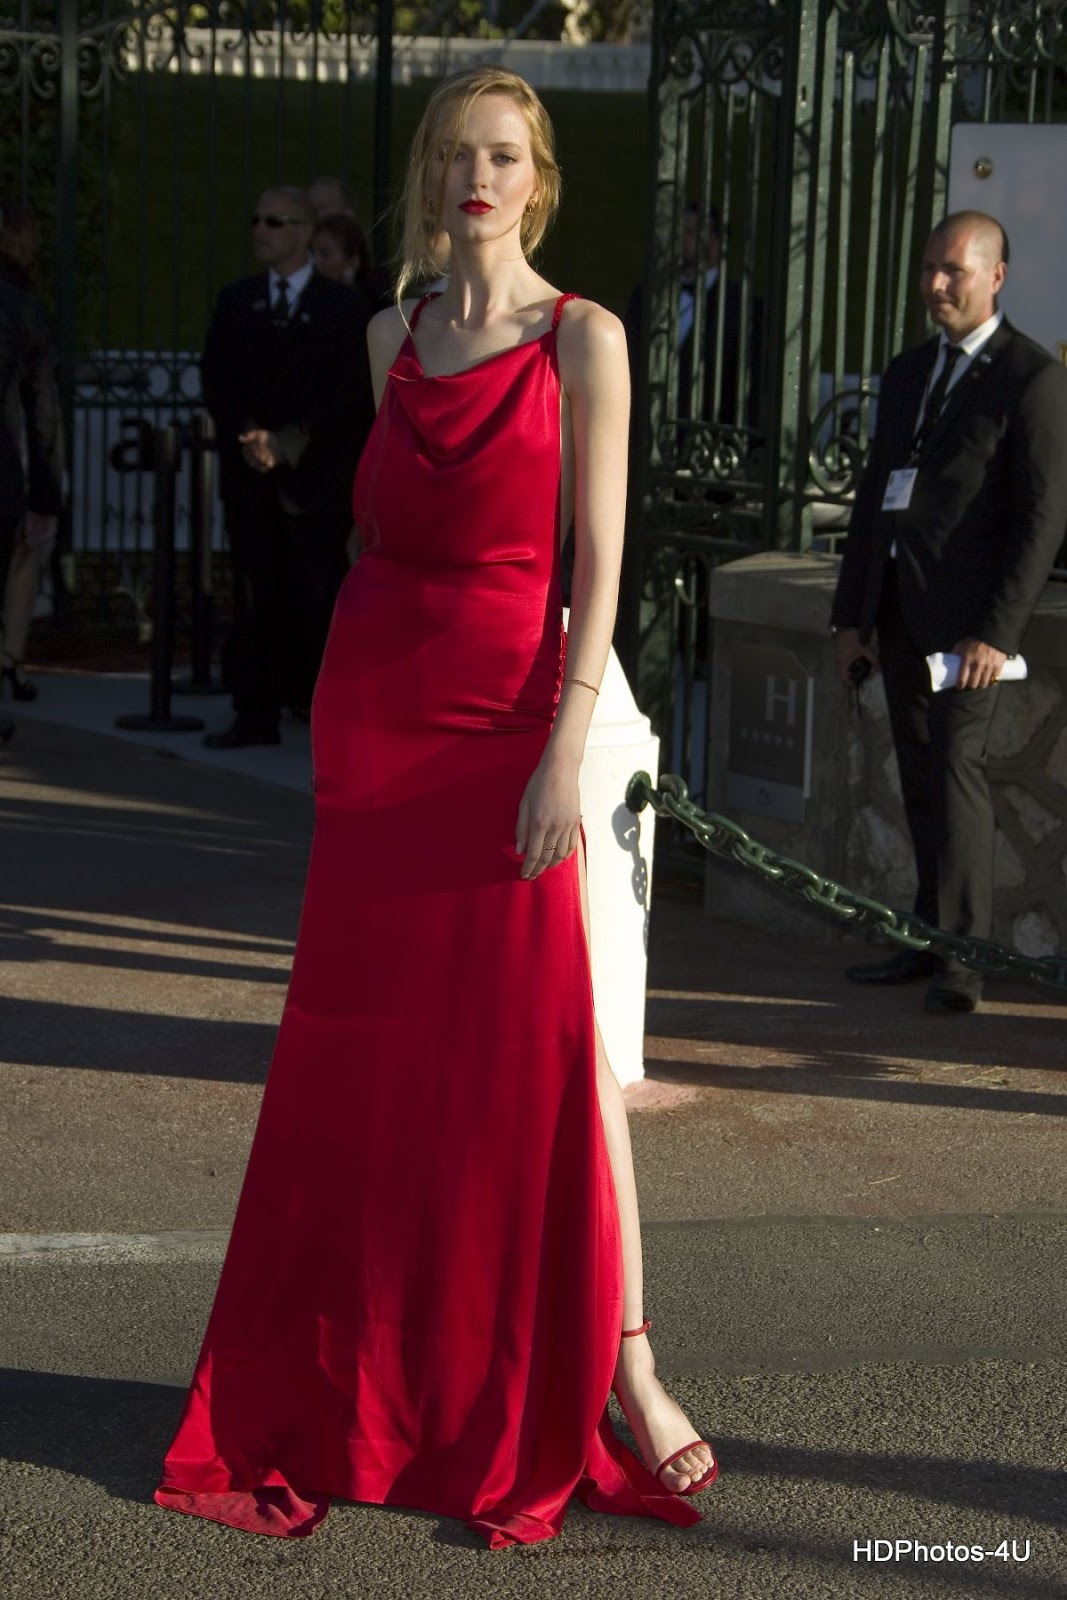 HQ Photos of Daria Strokous in Hot Red Dress At Amfar S 23rd Cinema Against Aids Gala In Antibes